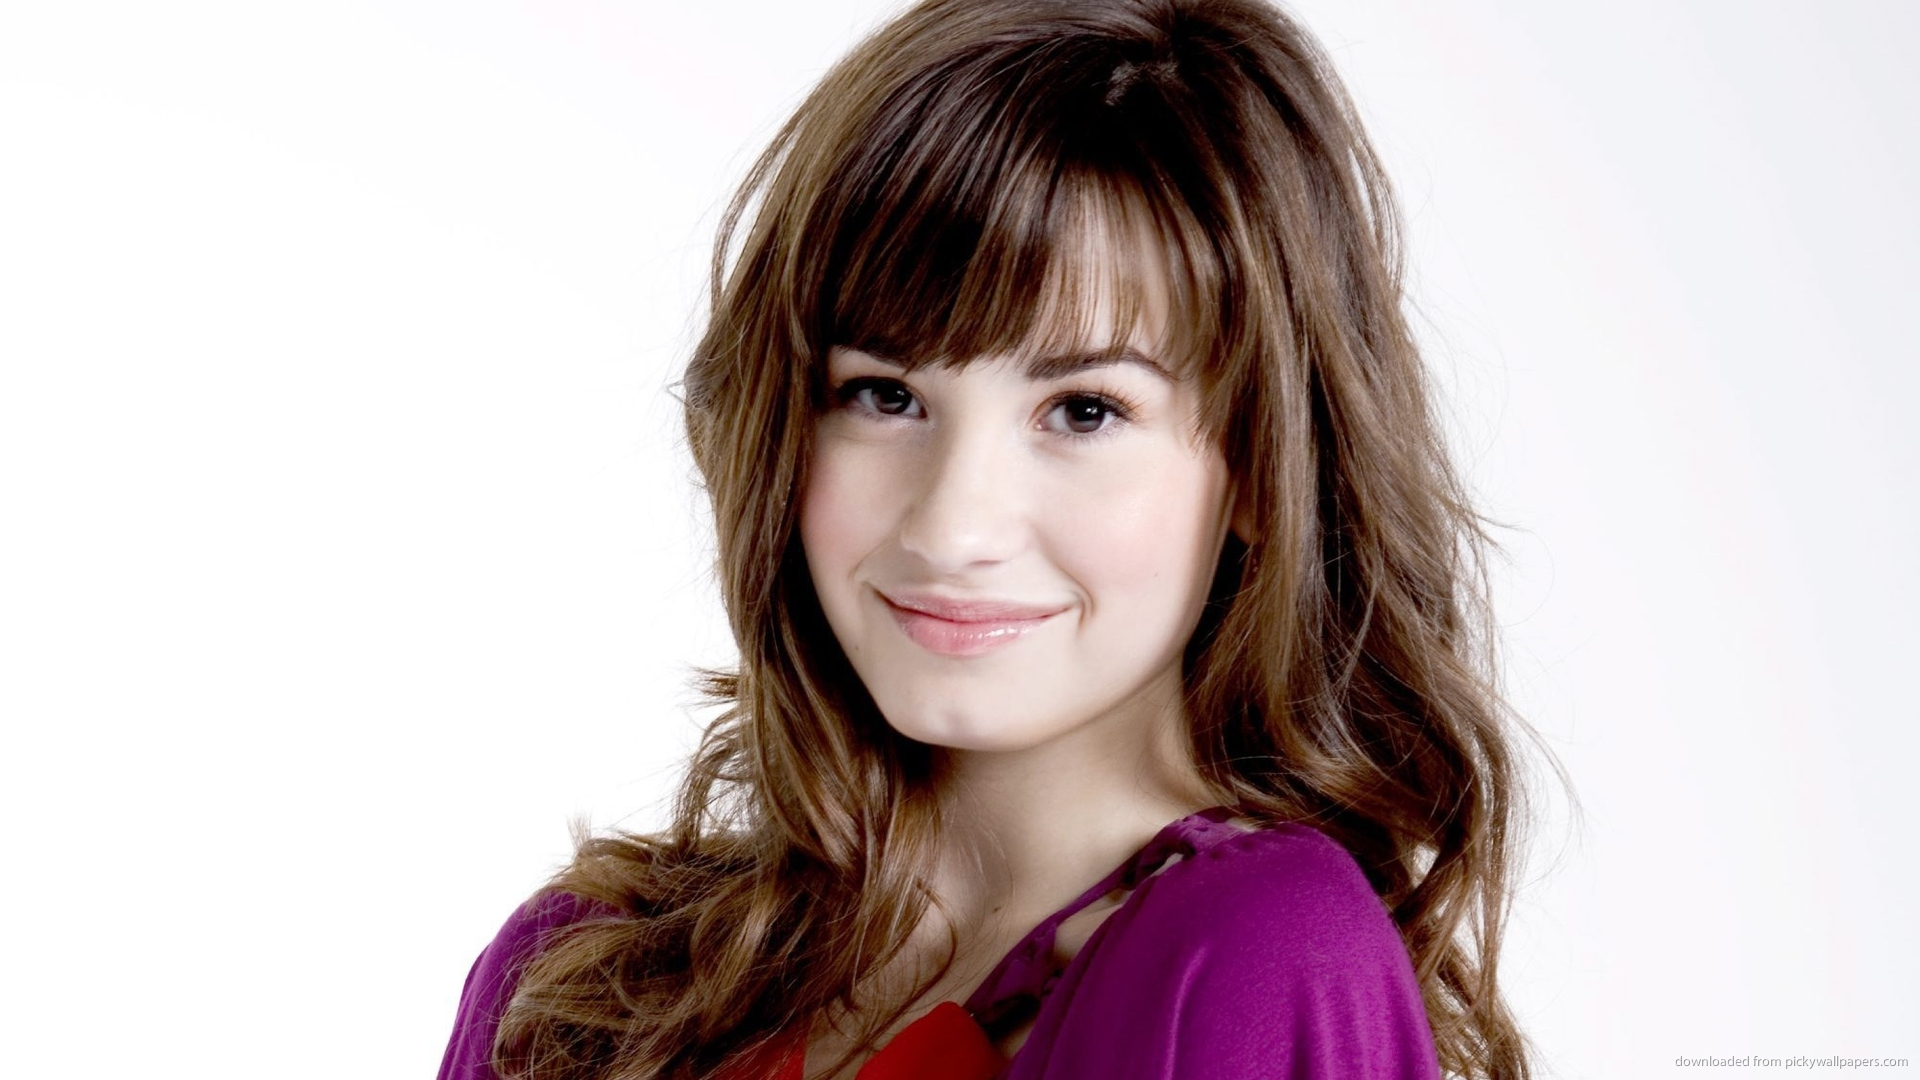 HVM 56 Pictures of Demi Lovato HD 46 Top Wallpapers 1920x1080